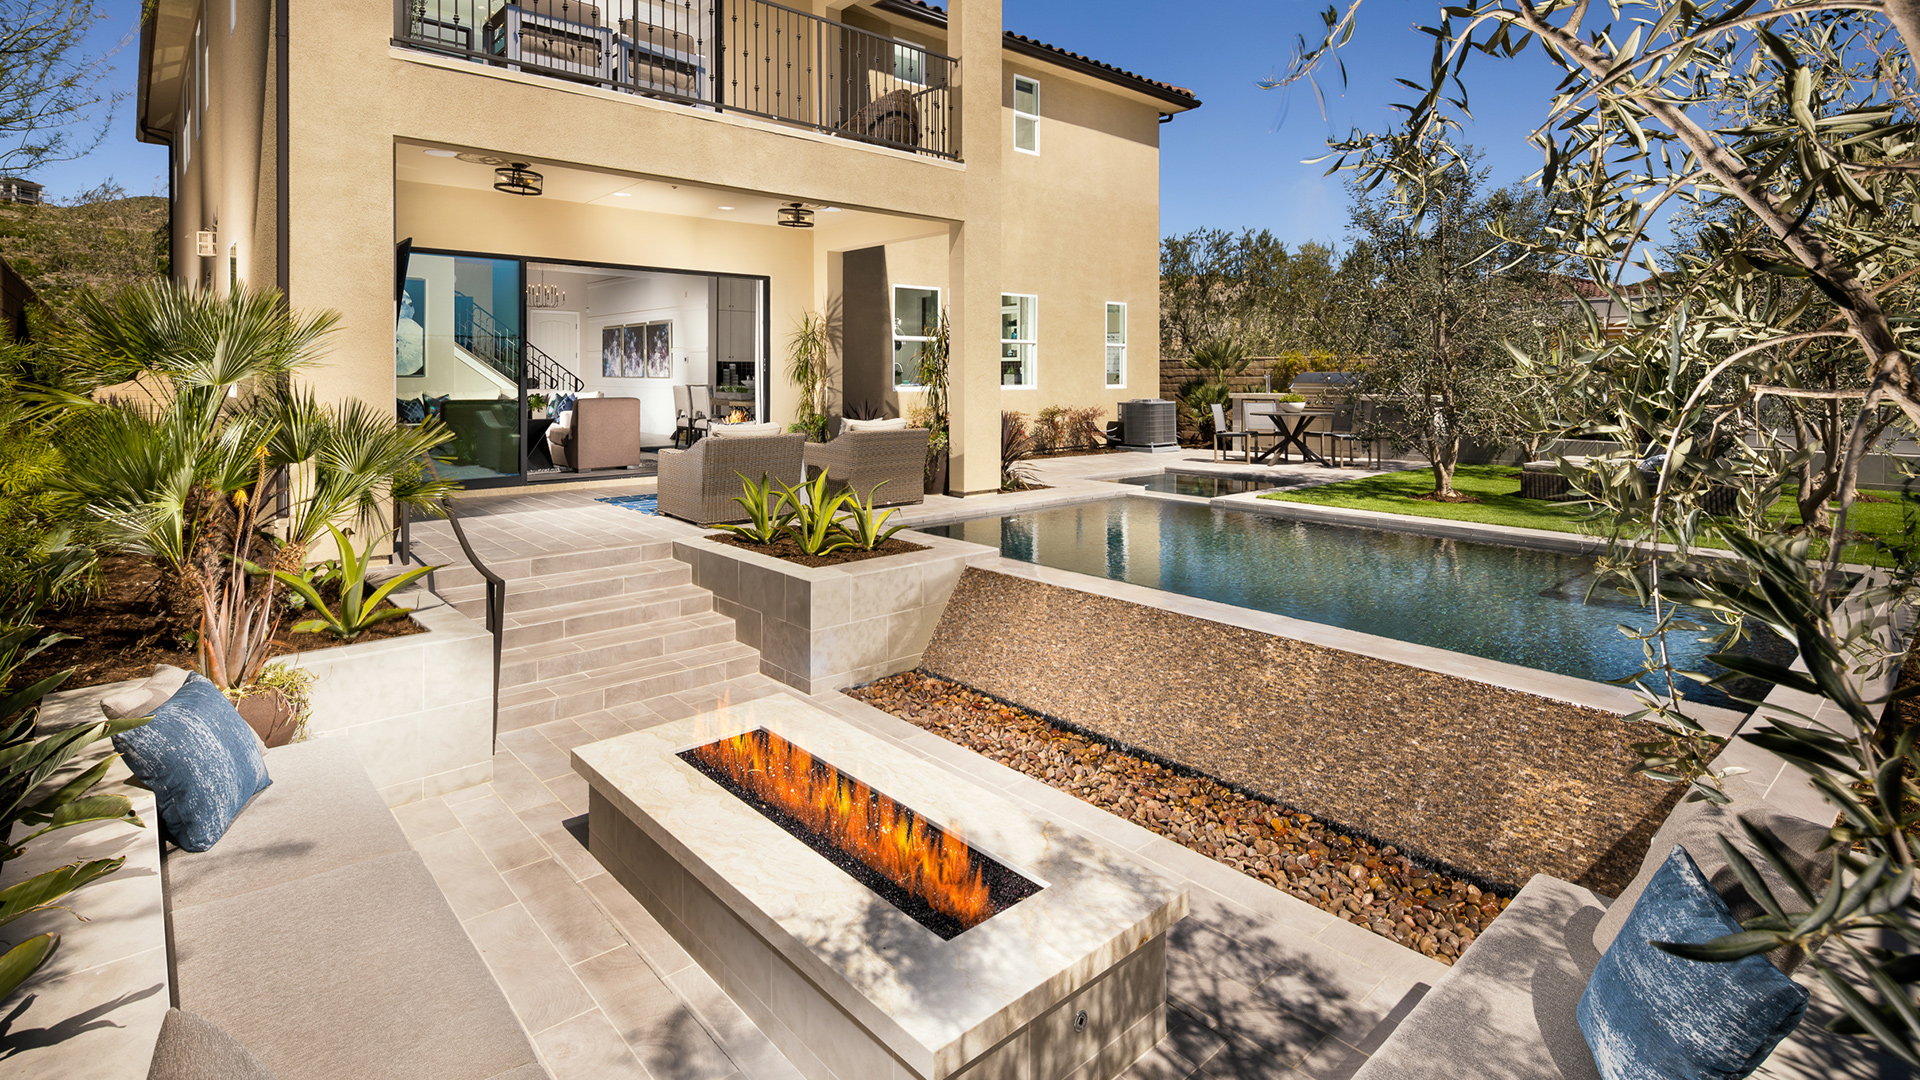 Santa Clarita Ca >> Santa Clarita Ca New Construction Homes Avalon At Plum Canyon